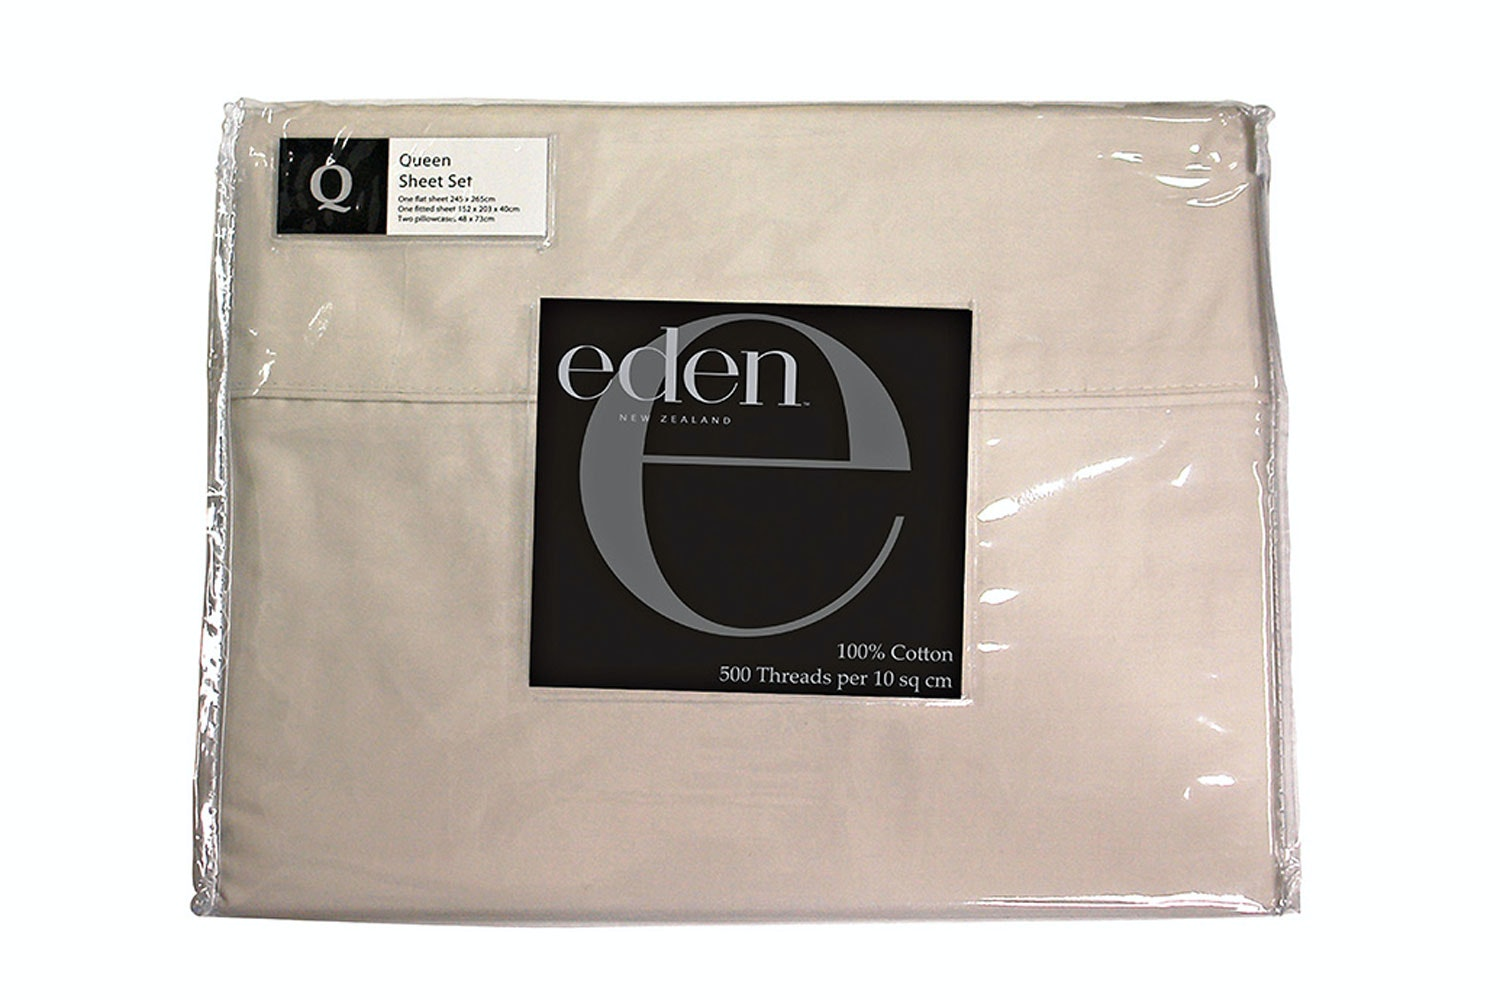 Eden 500TC Sheets